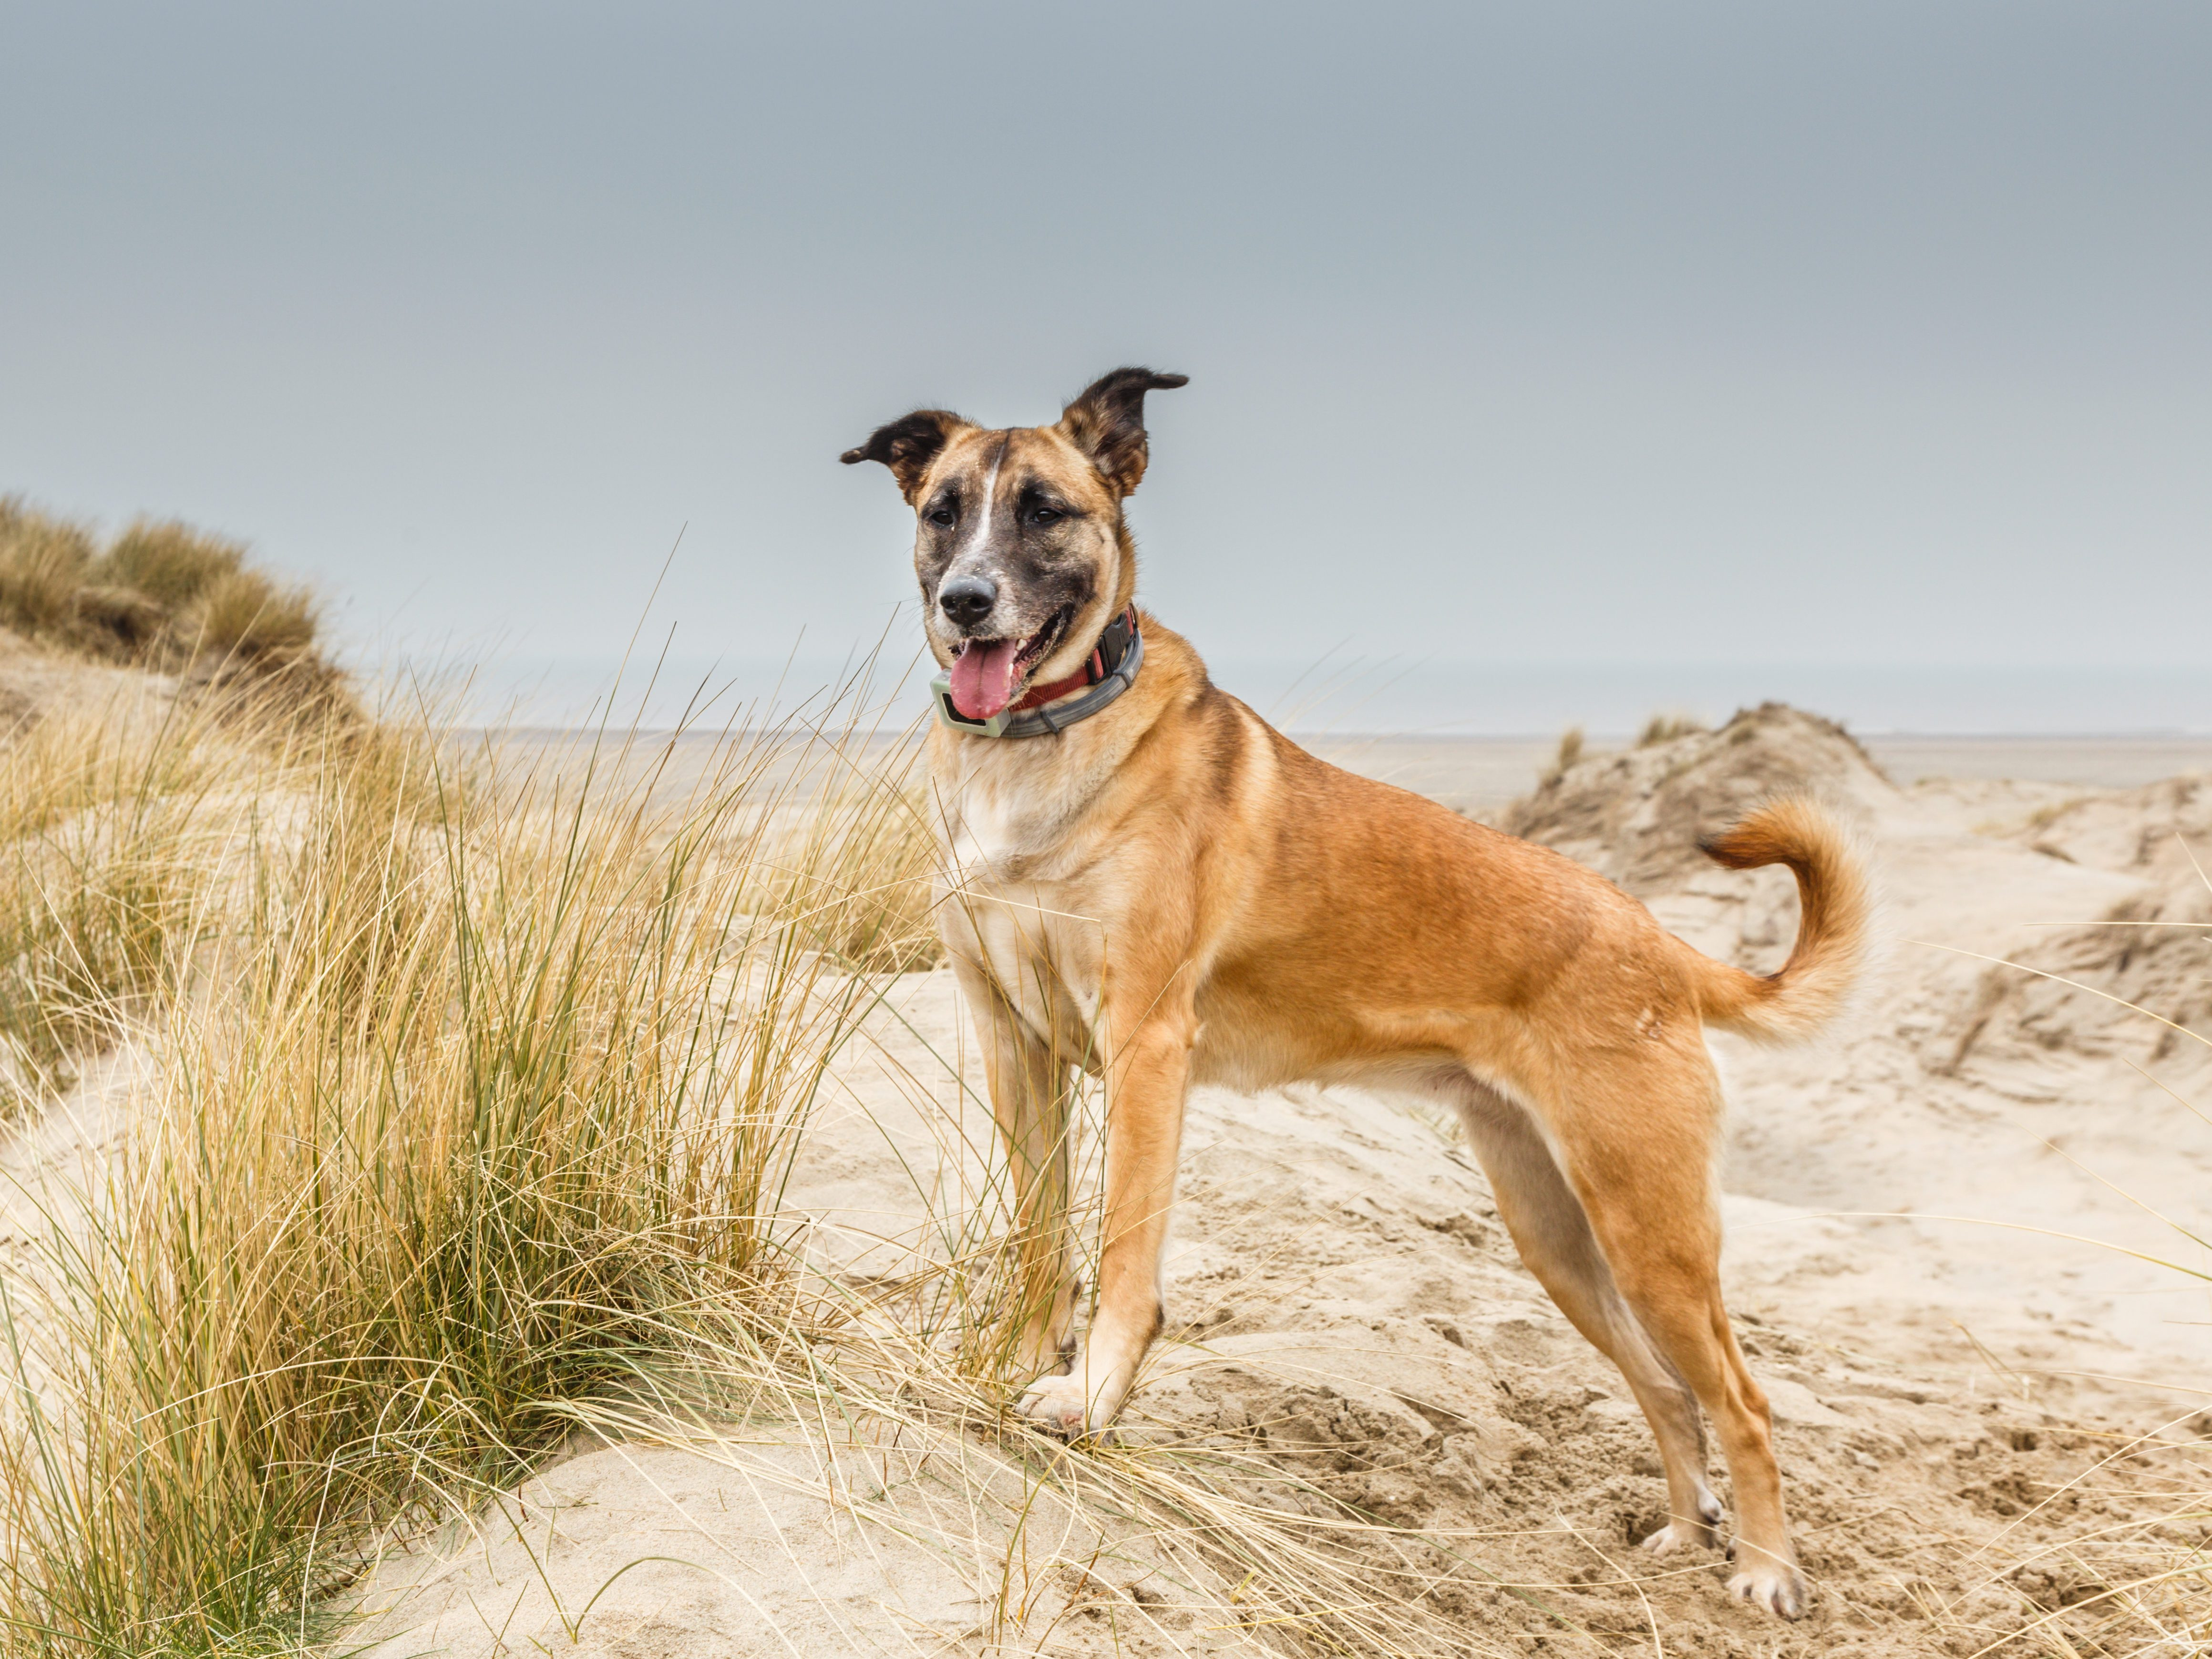 A beautiful Belgian shepherd posing standing in a dune landscape with a proudly raised head and a collar with GPS tracker around her neck looking from low right to high left in the photo